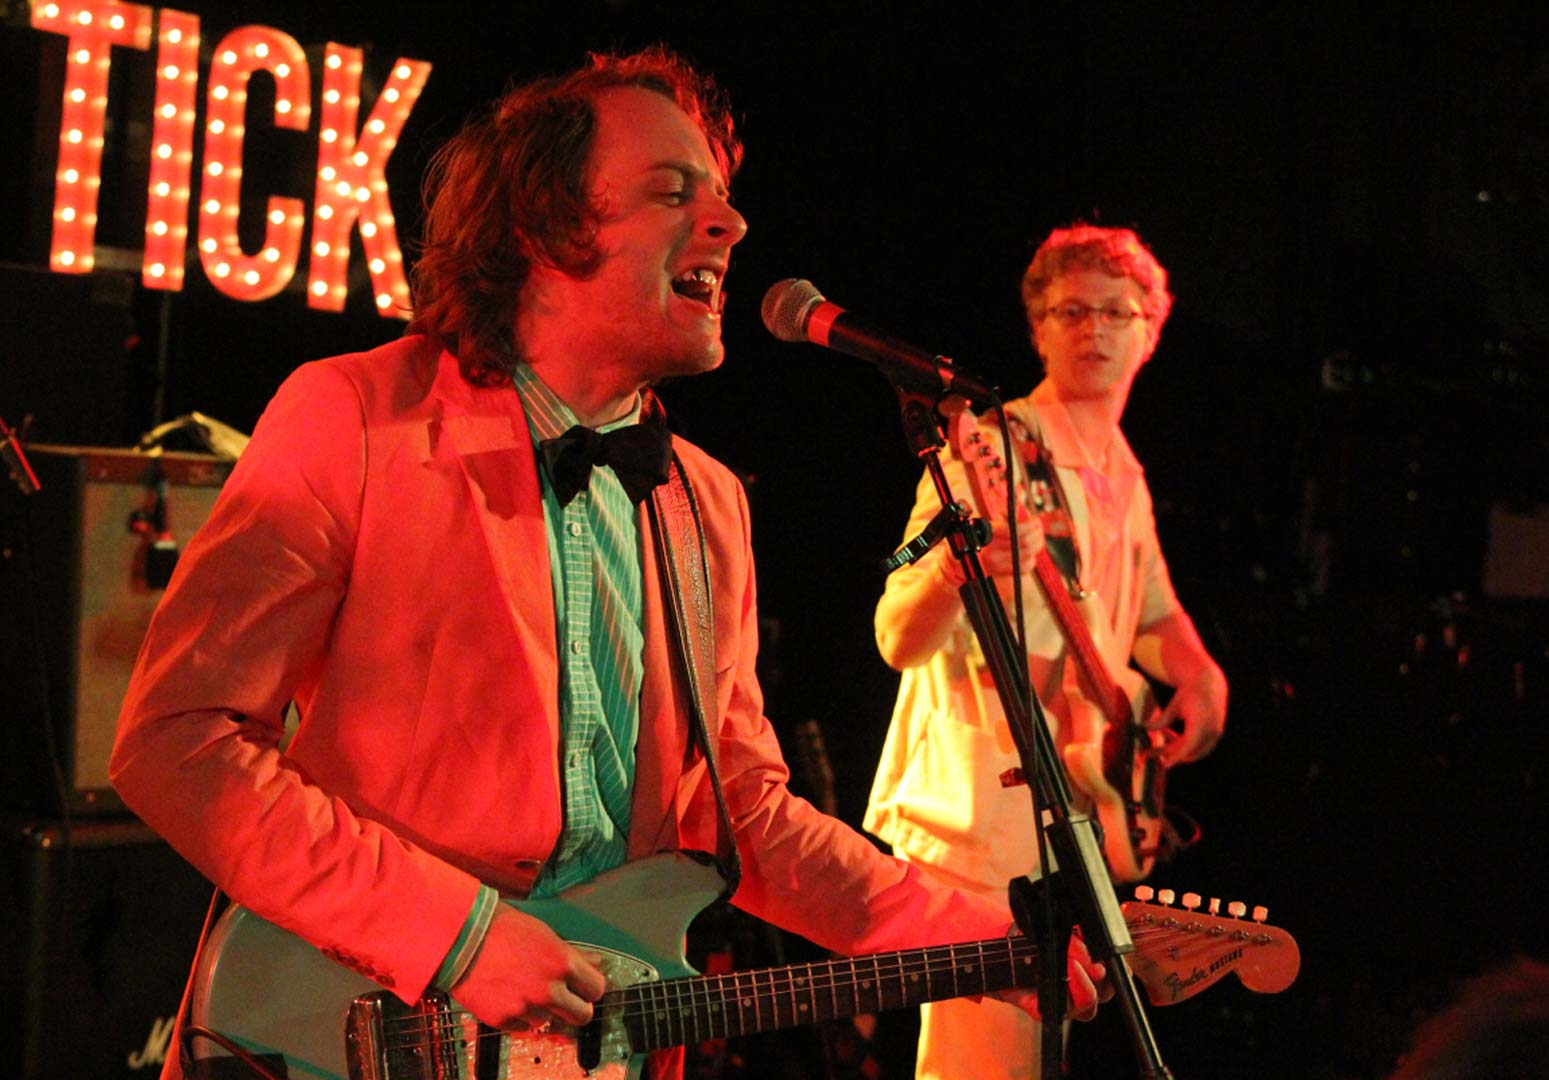 Deer Tick - Fronted by iconic talent John McCauley,Deer Tick is an alternative rock band hailing from Providence, Rhode Island. APS Mastering was present at the dawn of the groups illustrious career, mastering their first two critically acclaimed albums War Elephant and Born on Flag Day.